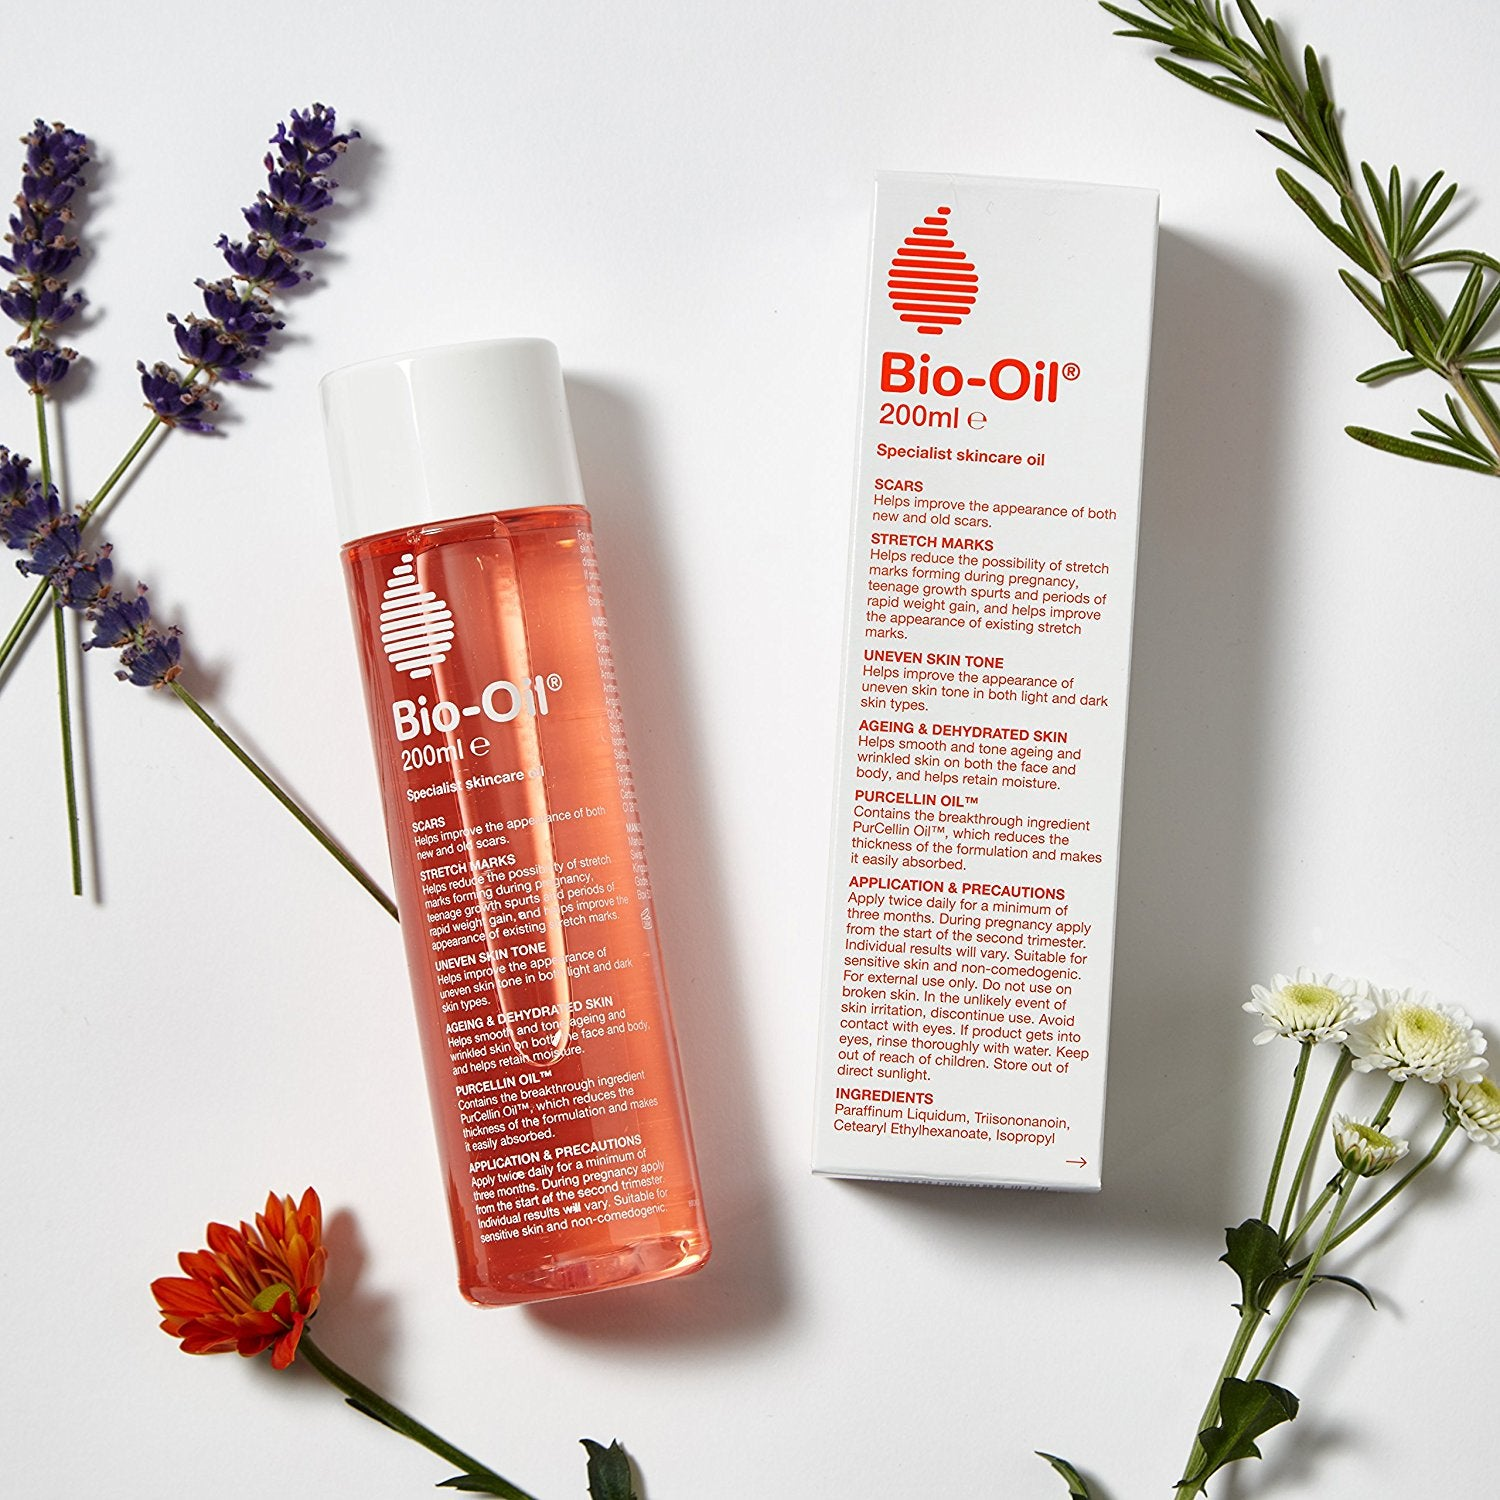 Bio-Oil Skin Carer and Skin Repairer with Purcellin Oil